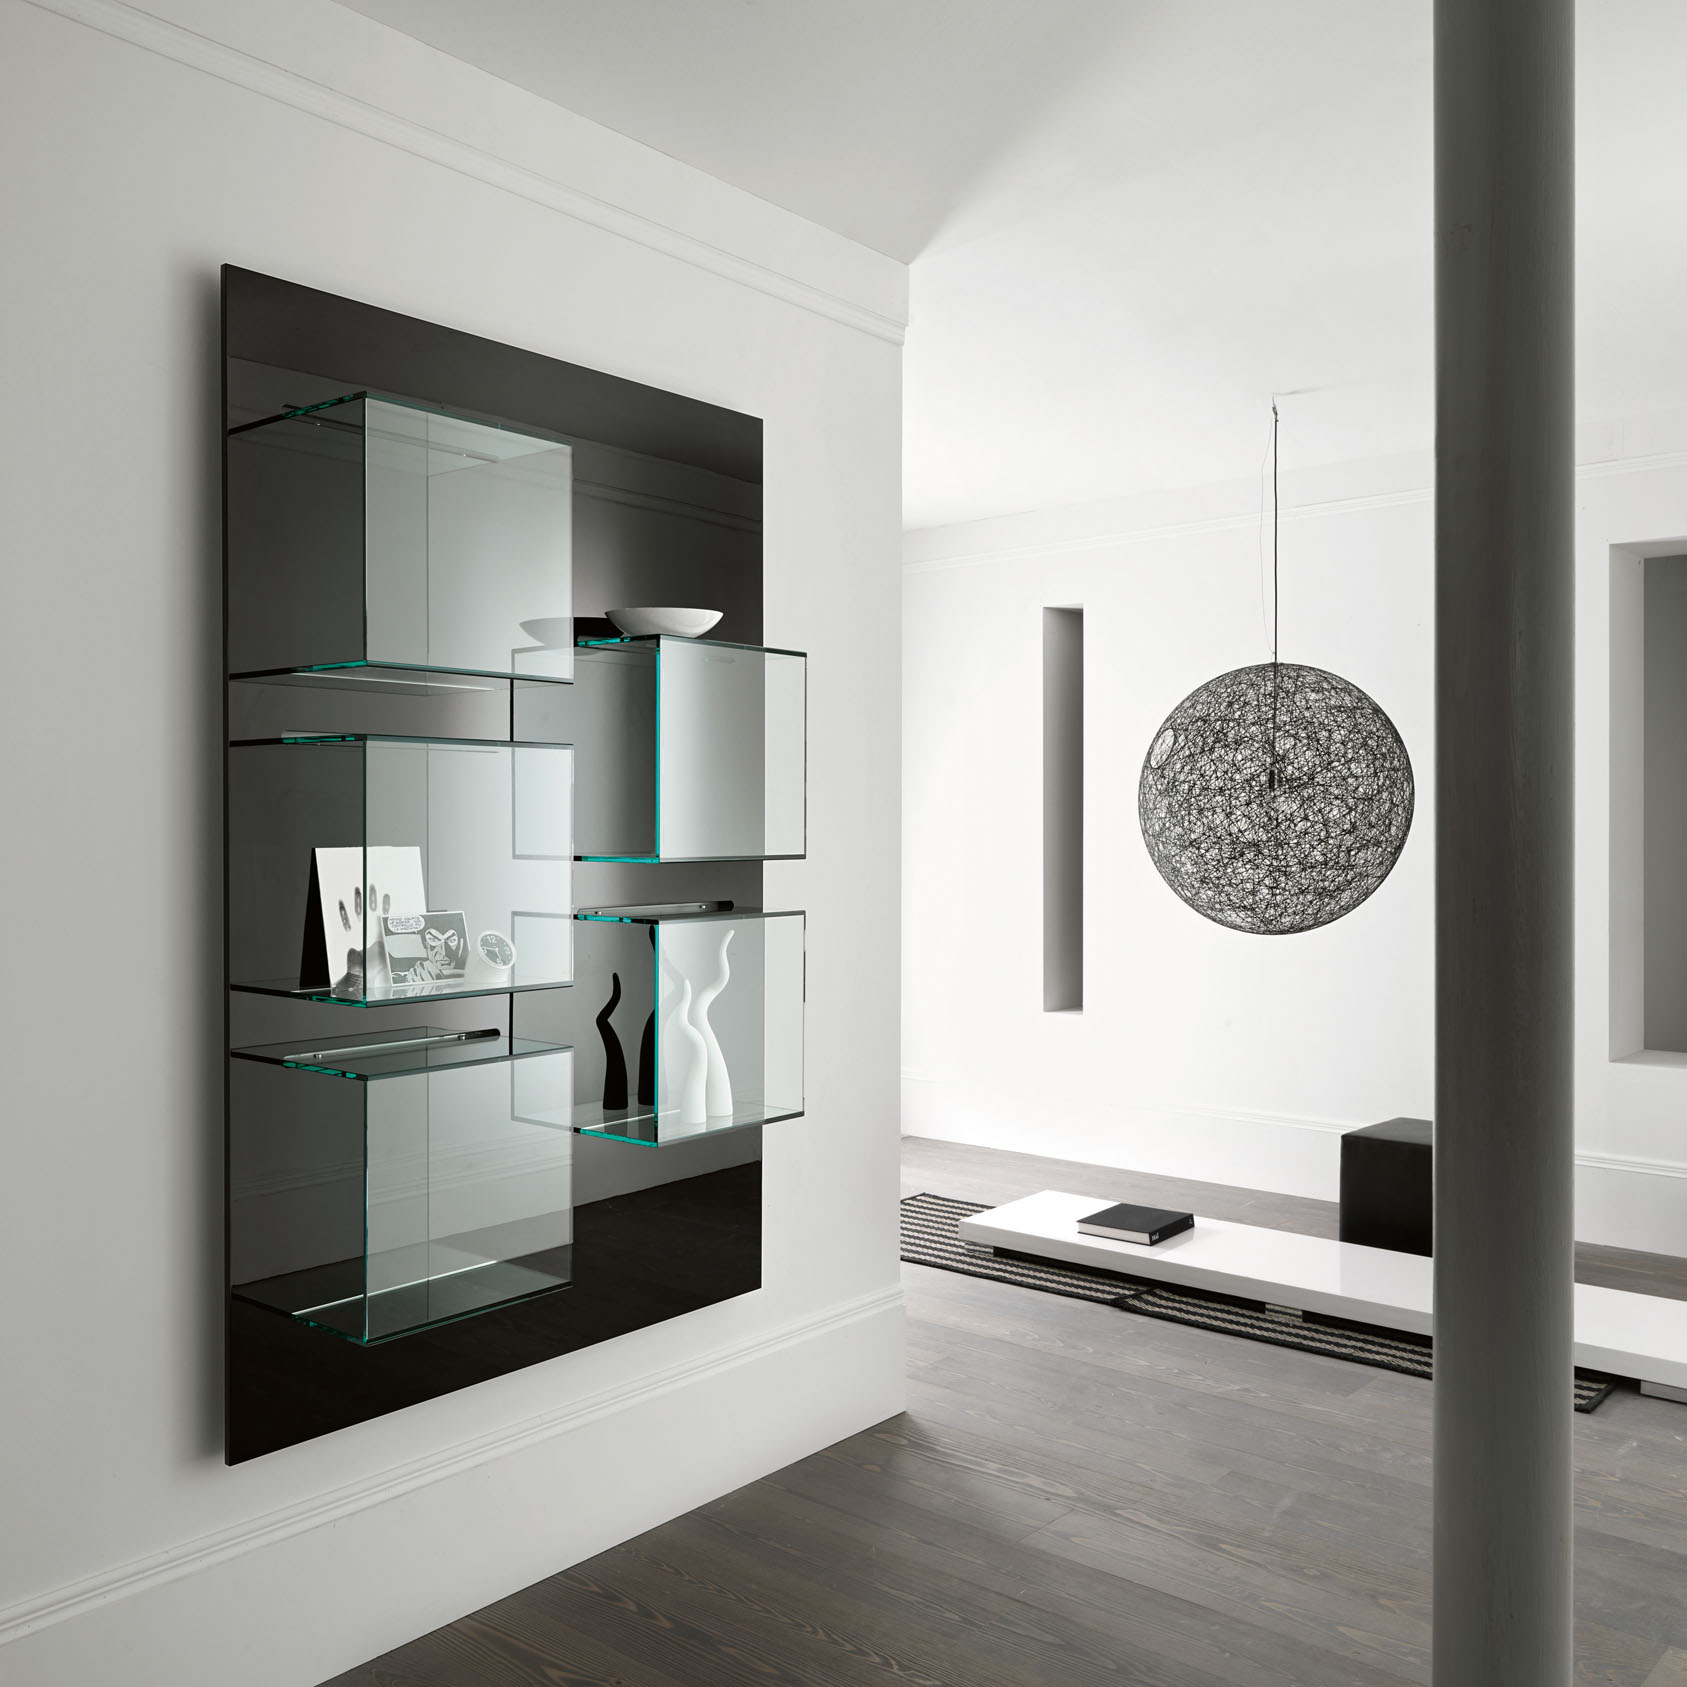 glass cabinets 10 Glass Cabinets For A Luxury Home dazibao wall units furniture 1 1